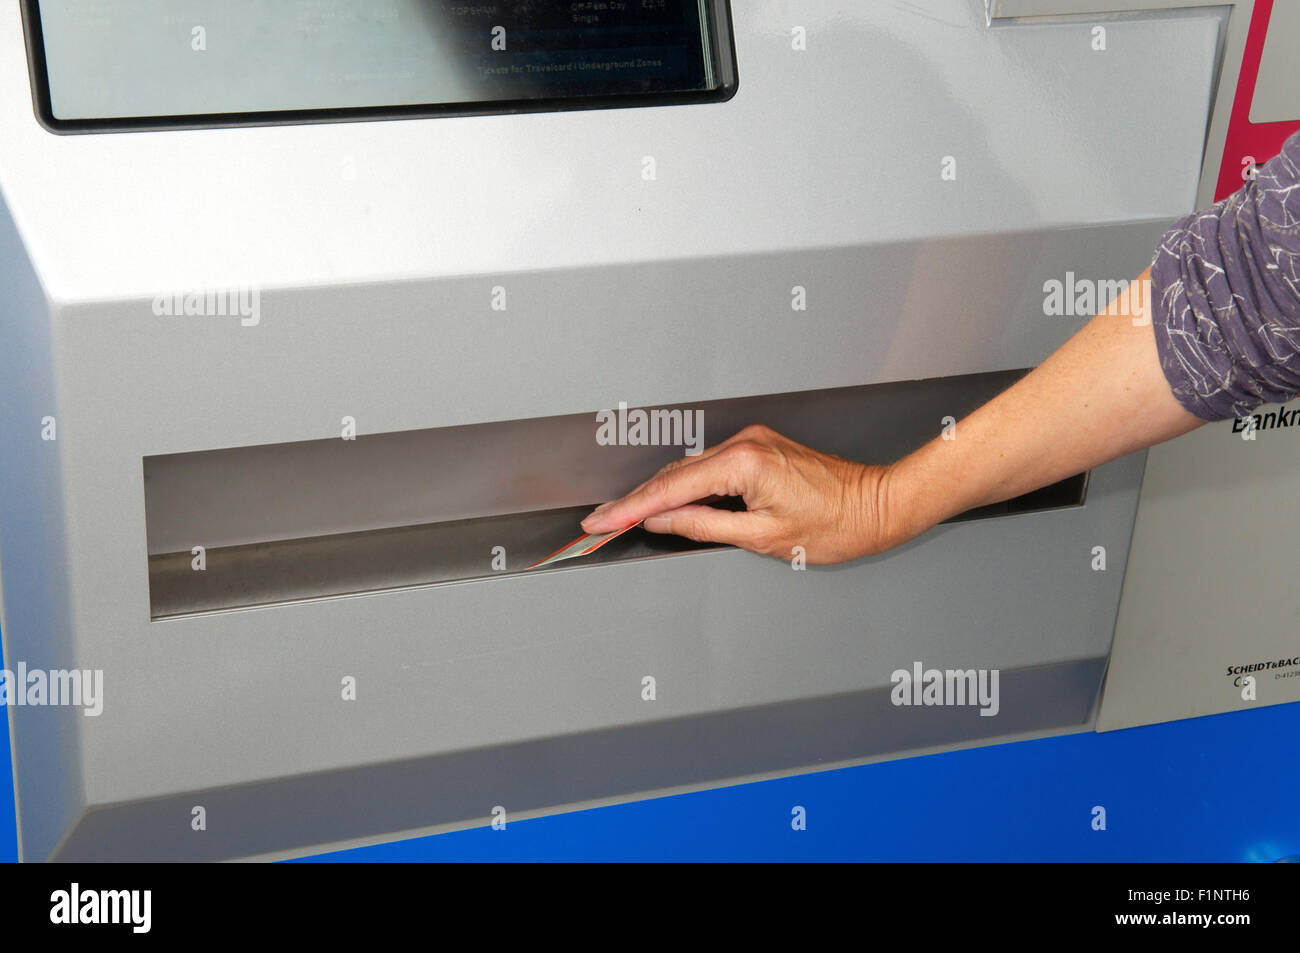 Taking rail ticket from a machine - Stock Image